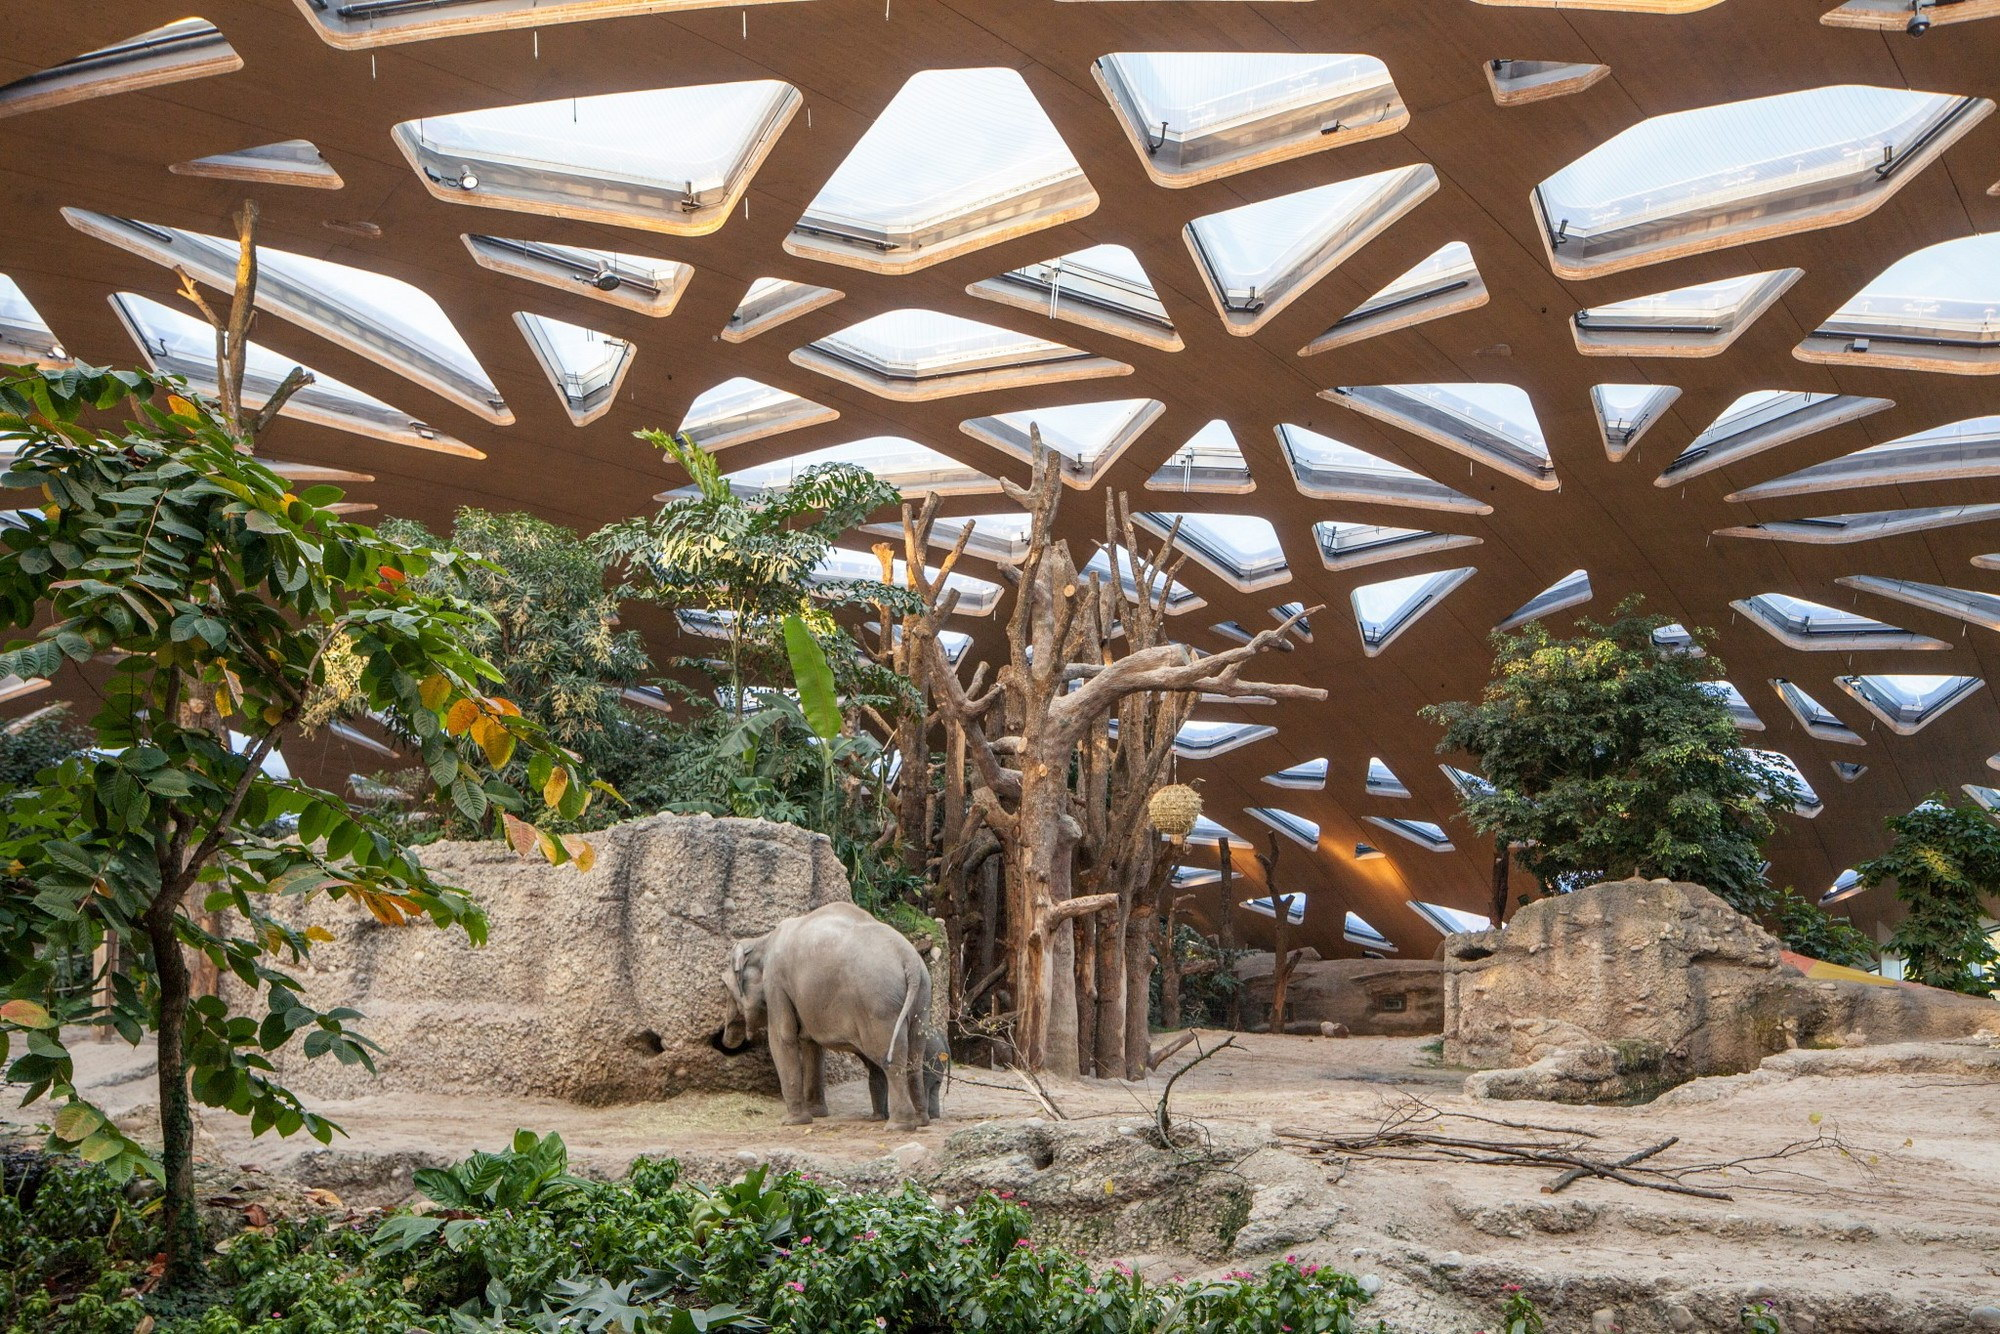 Elephant House Zoo Zürich by MSA